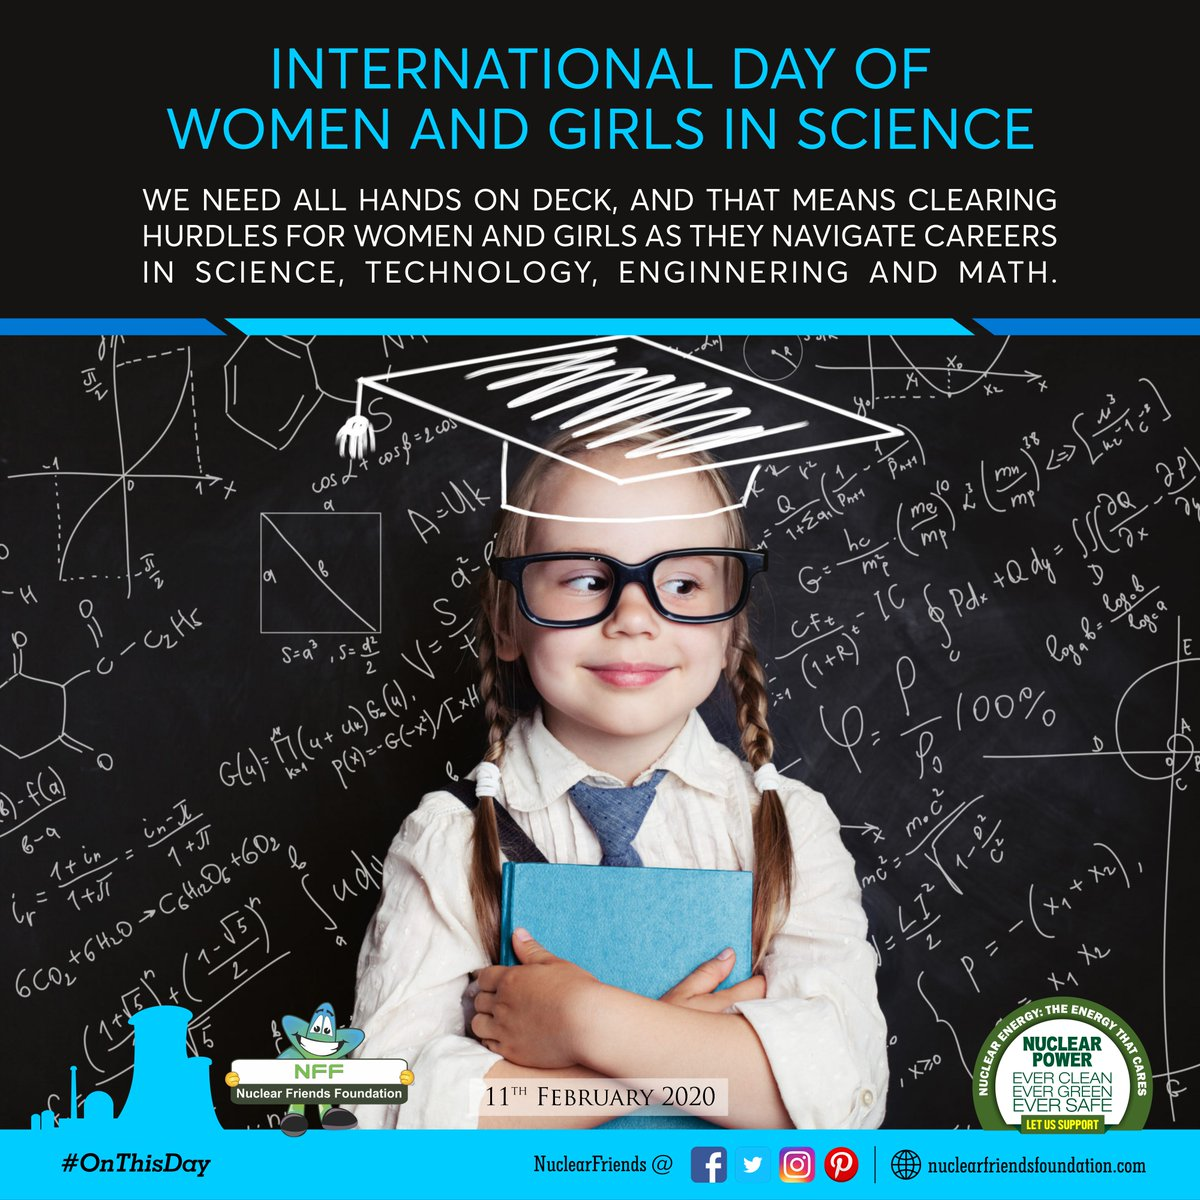 #WomenInScience Today is the International Day of Women and Girls in Science.  👩‍🔬 We need all hands on deck, and that means clearing hurdles for women and girls as they navigate careers in science, technology, engineering and math. #NuclearPower #NuclearEnergy #TuesdayMotivation